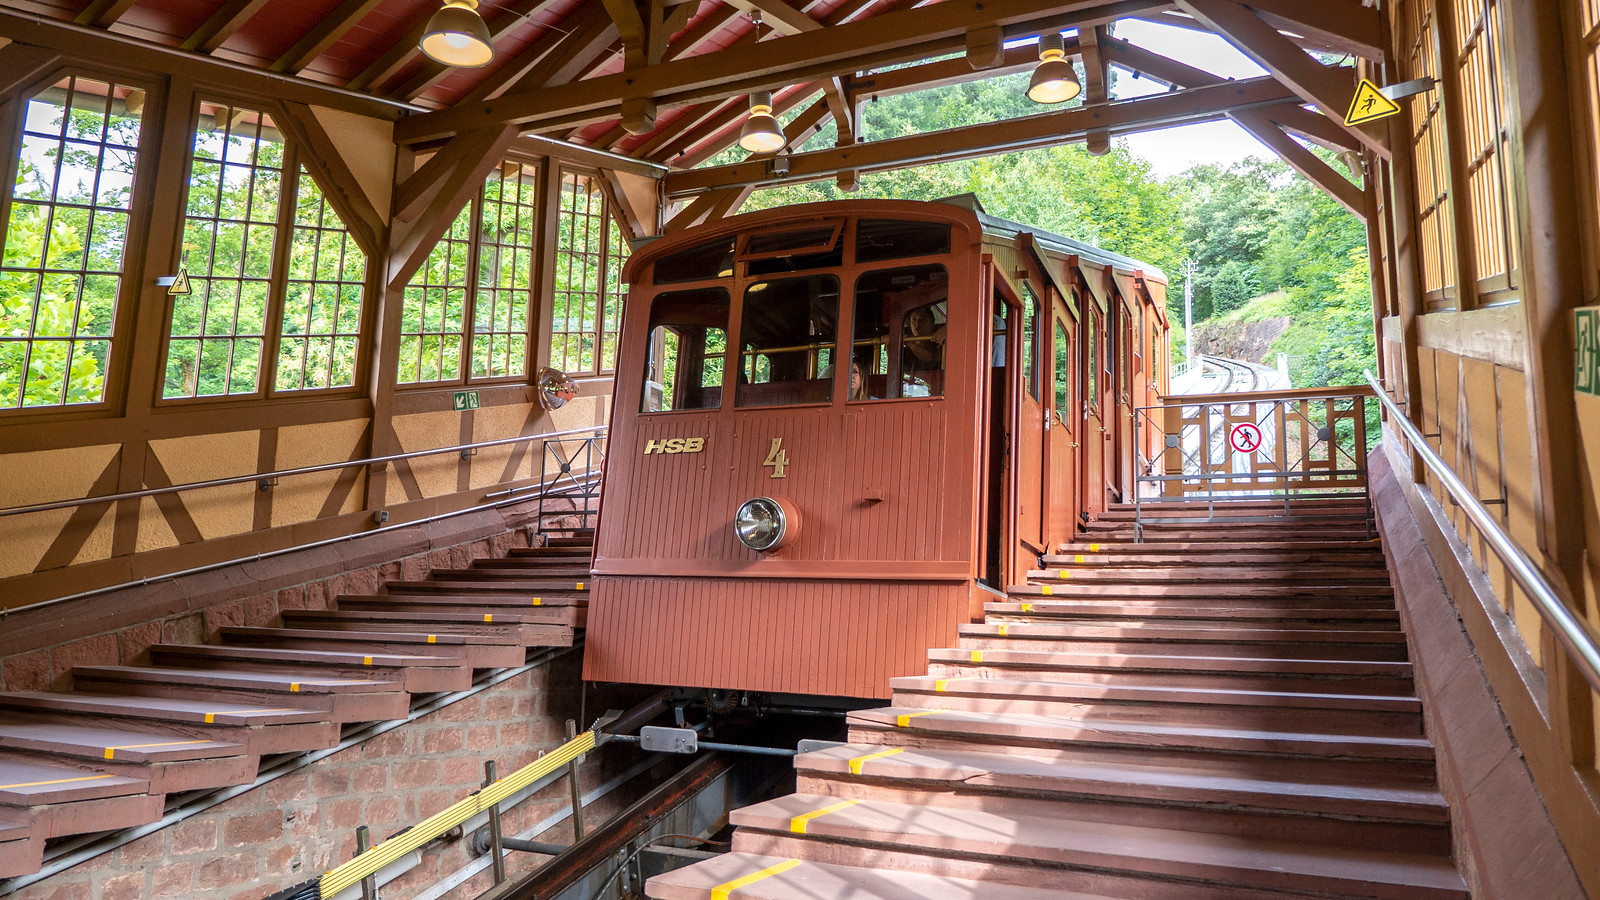 Spectacular Things to Do in Heidelberg Germany - Konigstuhl funicular